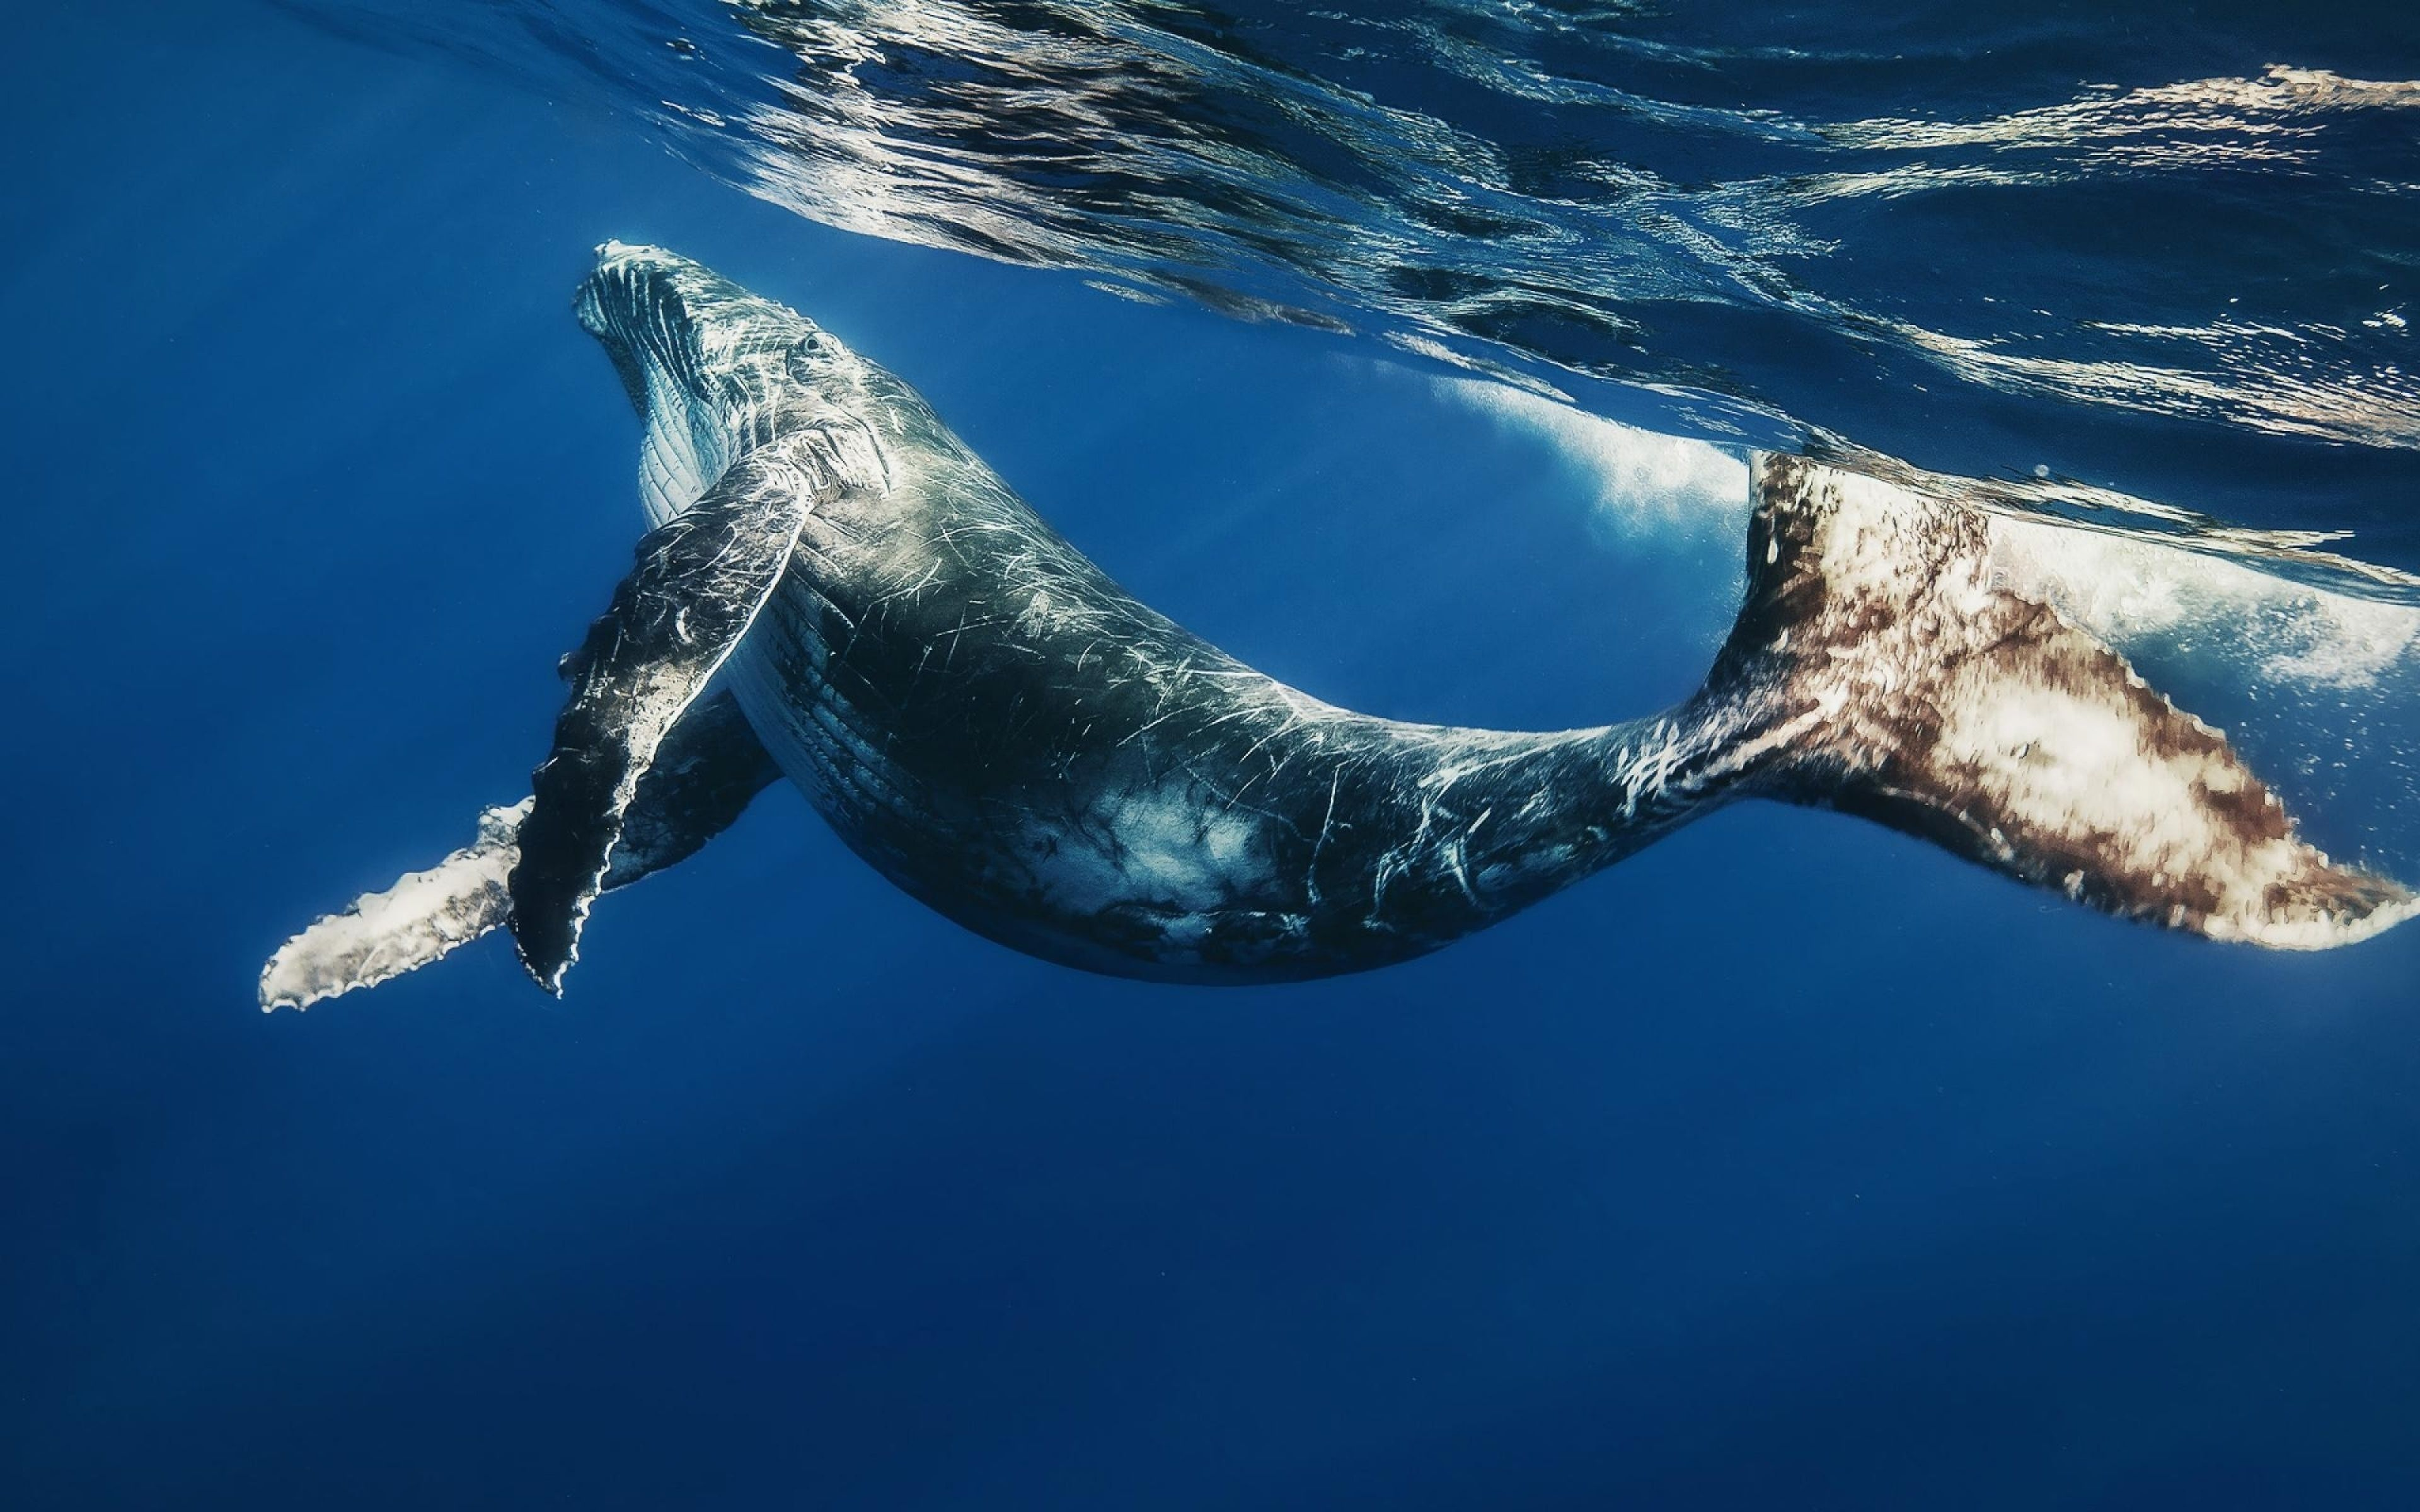 Download Wallpaper 3840x2400 Whale Swimming Underwater